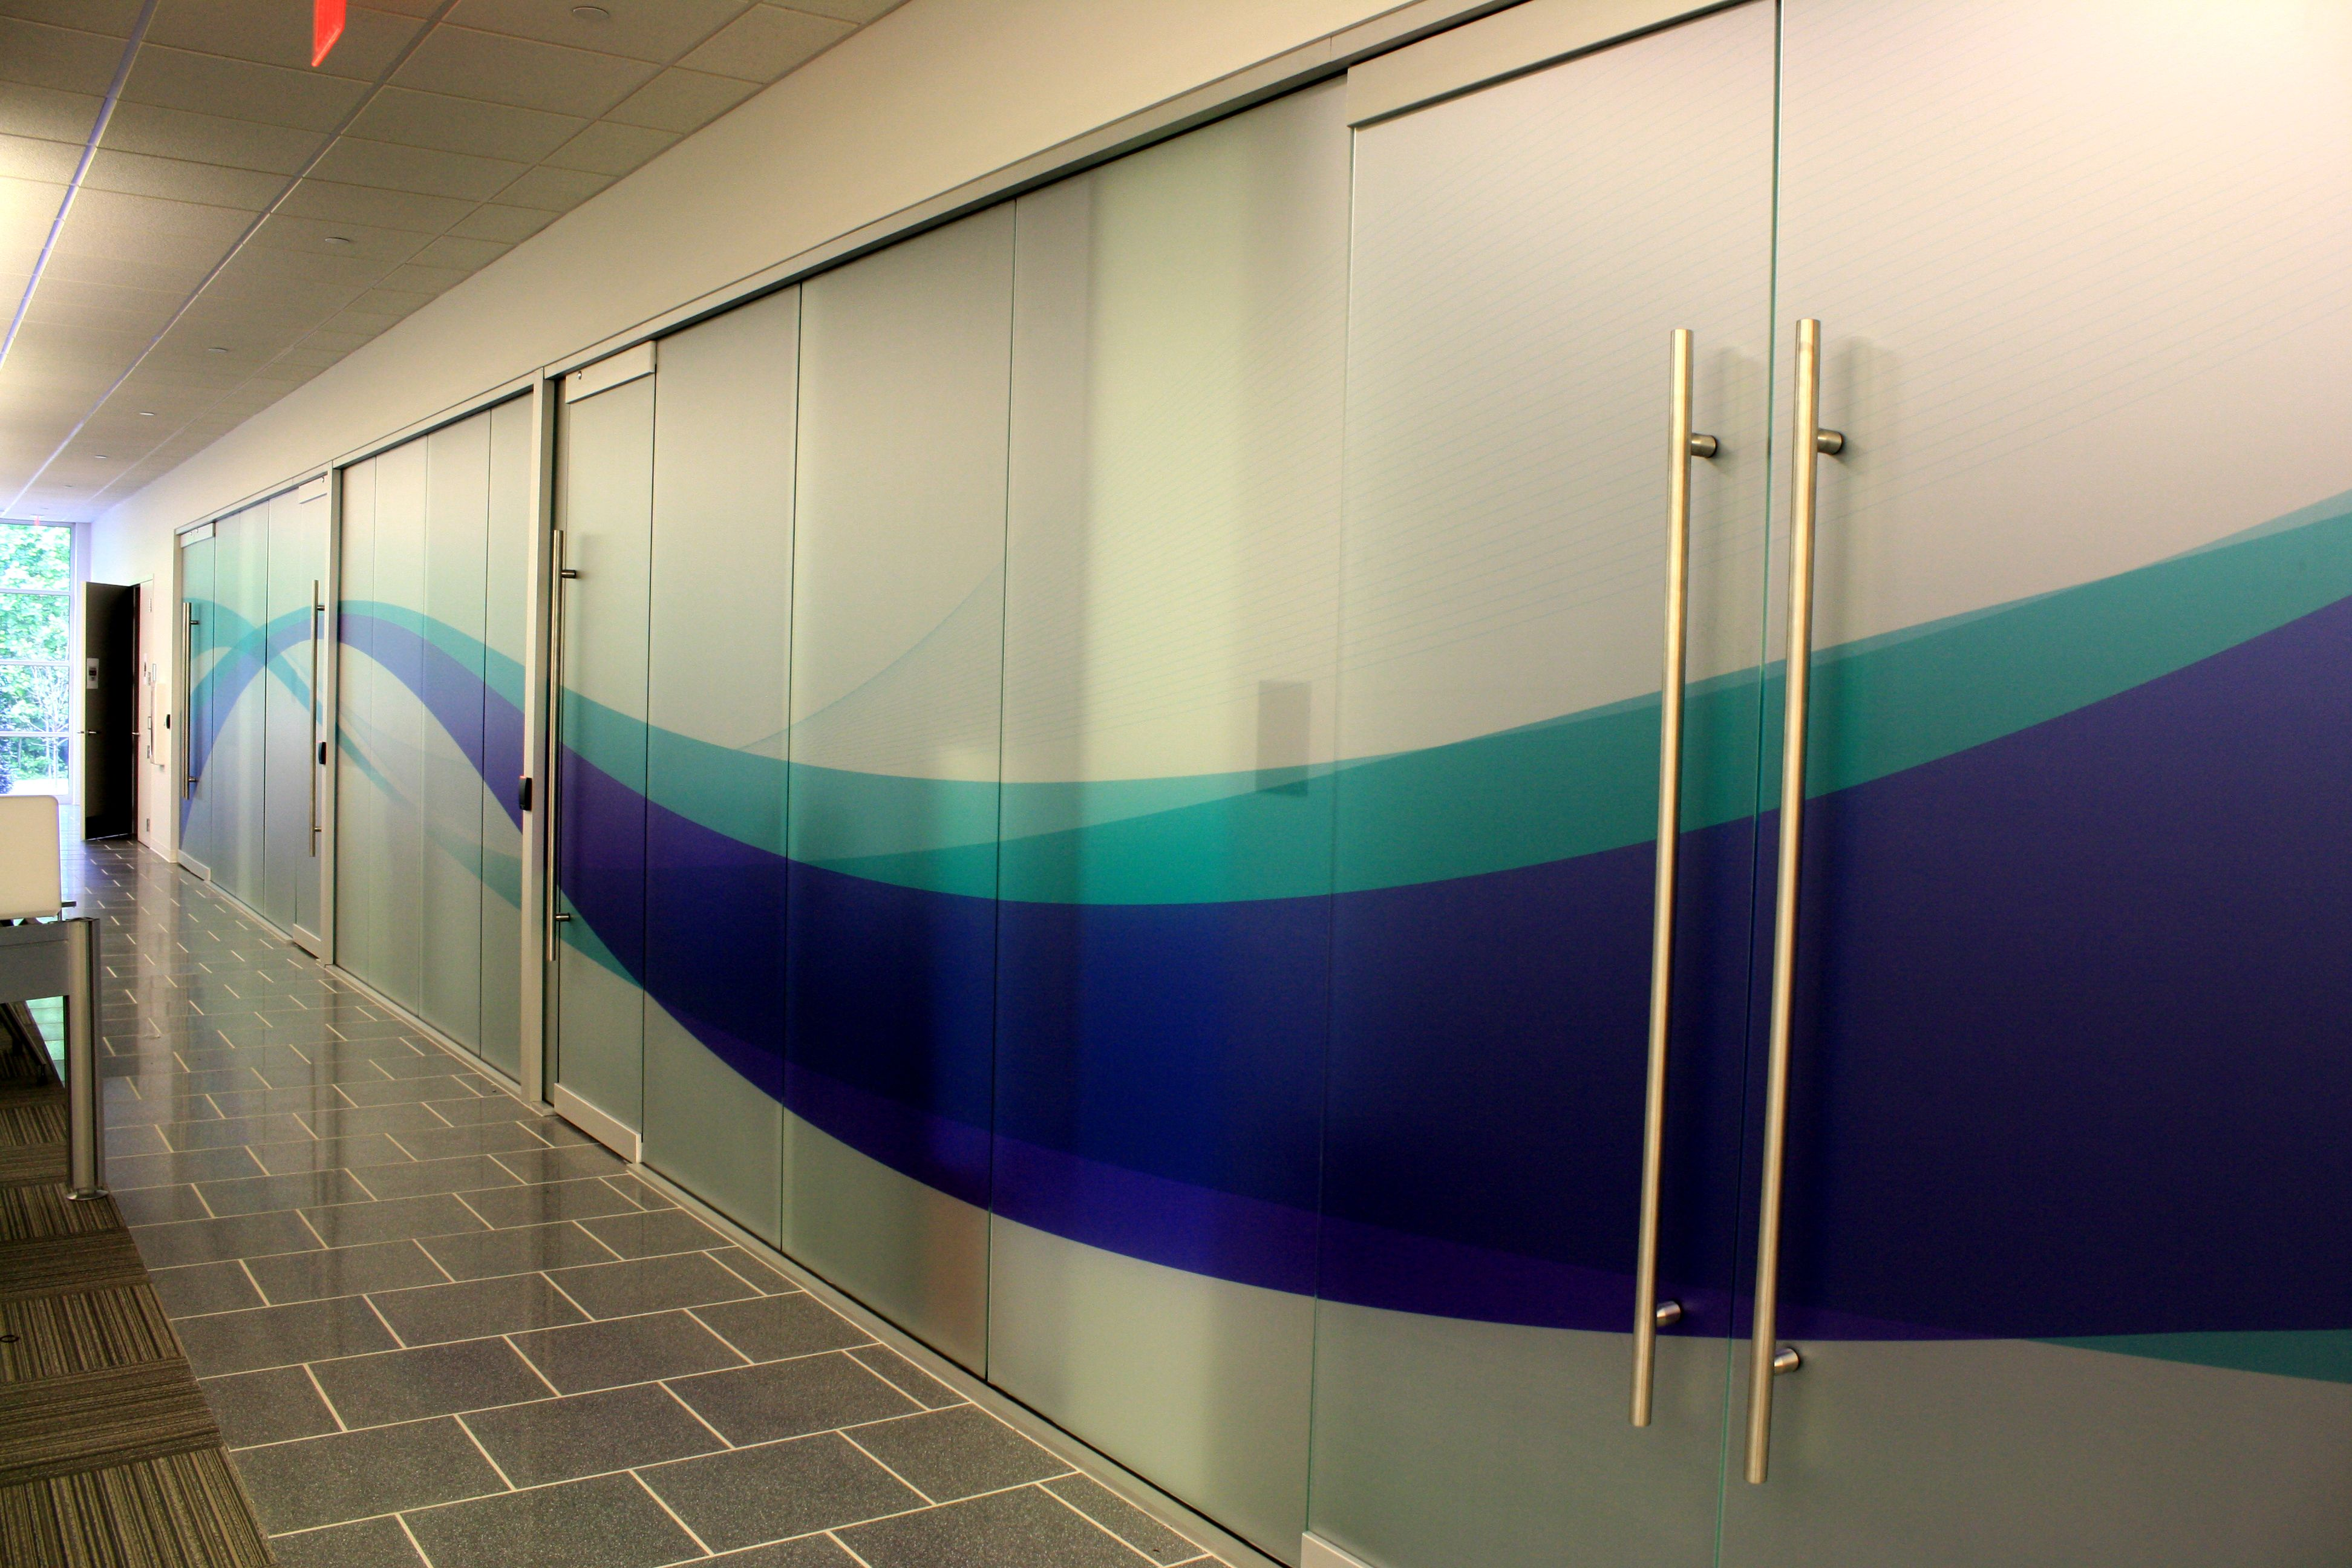 Frosted windows with a swoosh office branding office wall graphics floor graphics window graphics